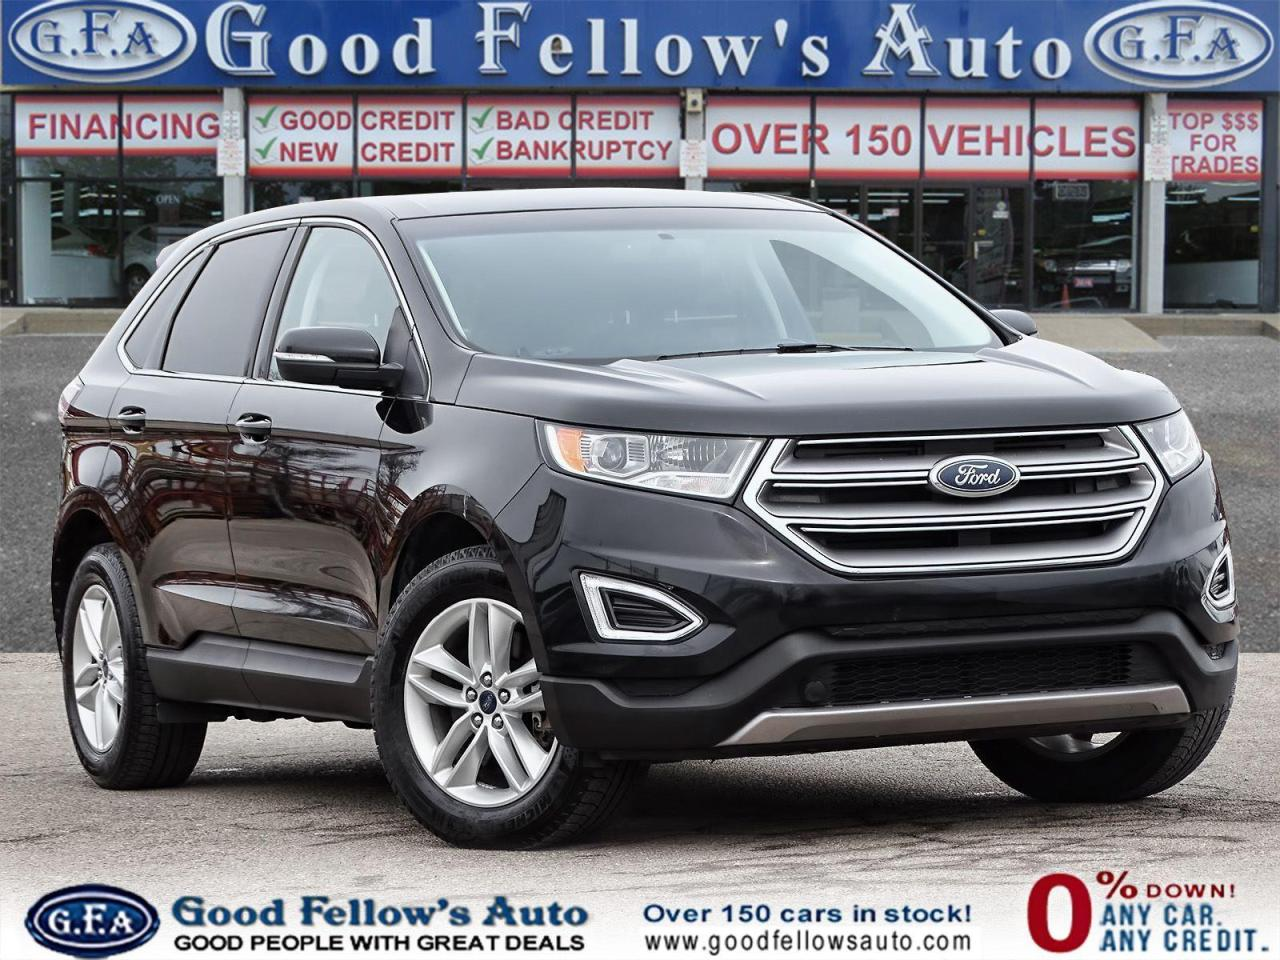 used 2016 Ford Edge car, priced at $18,750